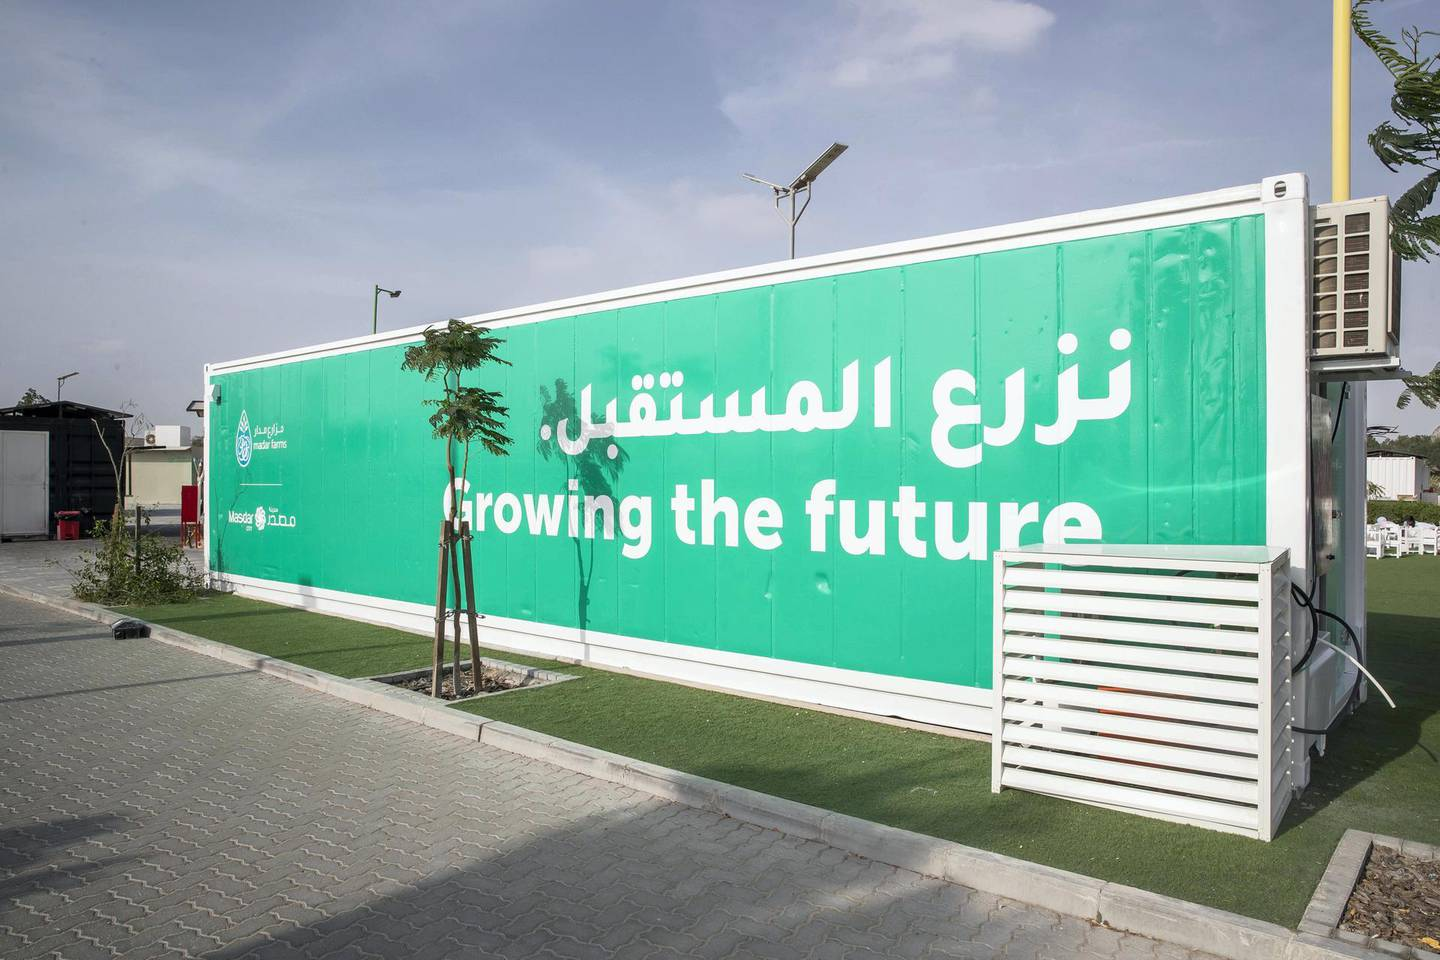 ABU DHABI, UNITED ARAB EMIRATES. 10 JANUARY 2019. Masdar Farm smart farming initiative, ahead of Abu Dhabi sustainability week. The Madar Farms Smart Farming retrofitted shipping container that grows 4 tons of leavy greens per year. (Photo: Antonie Robertson/The National) Journalist: Nick Webster. Section: National.